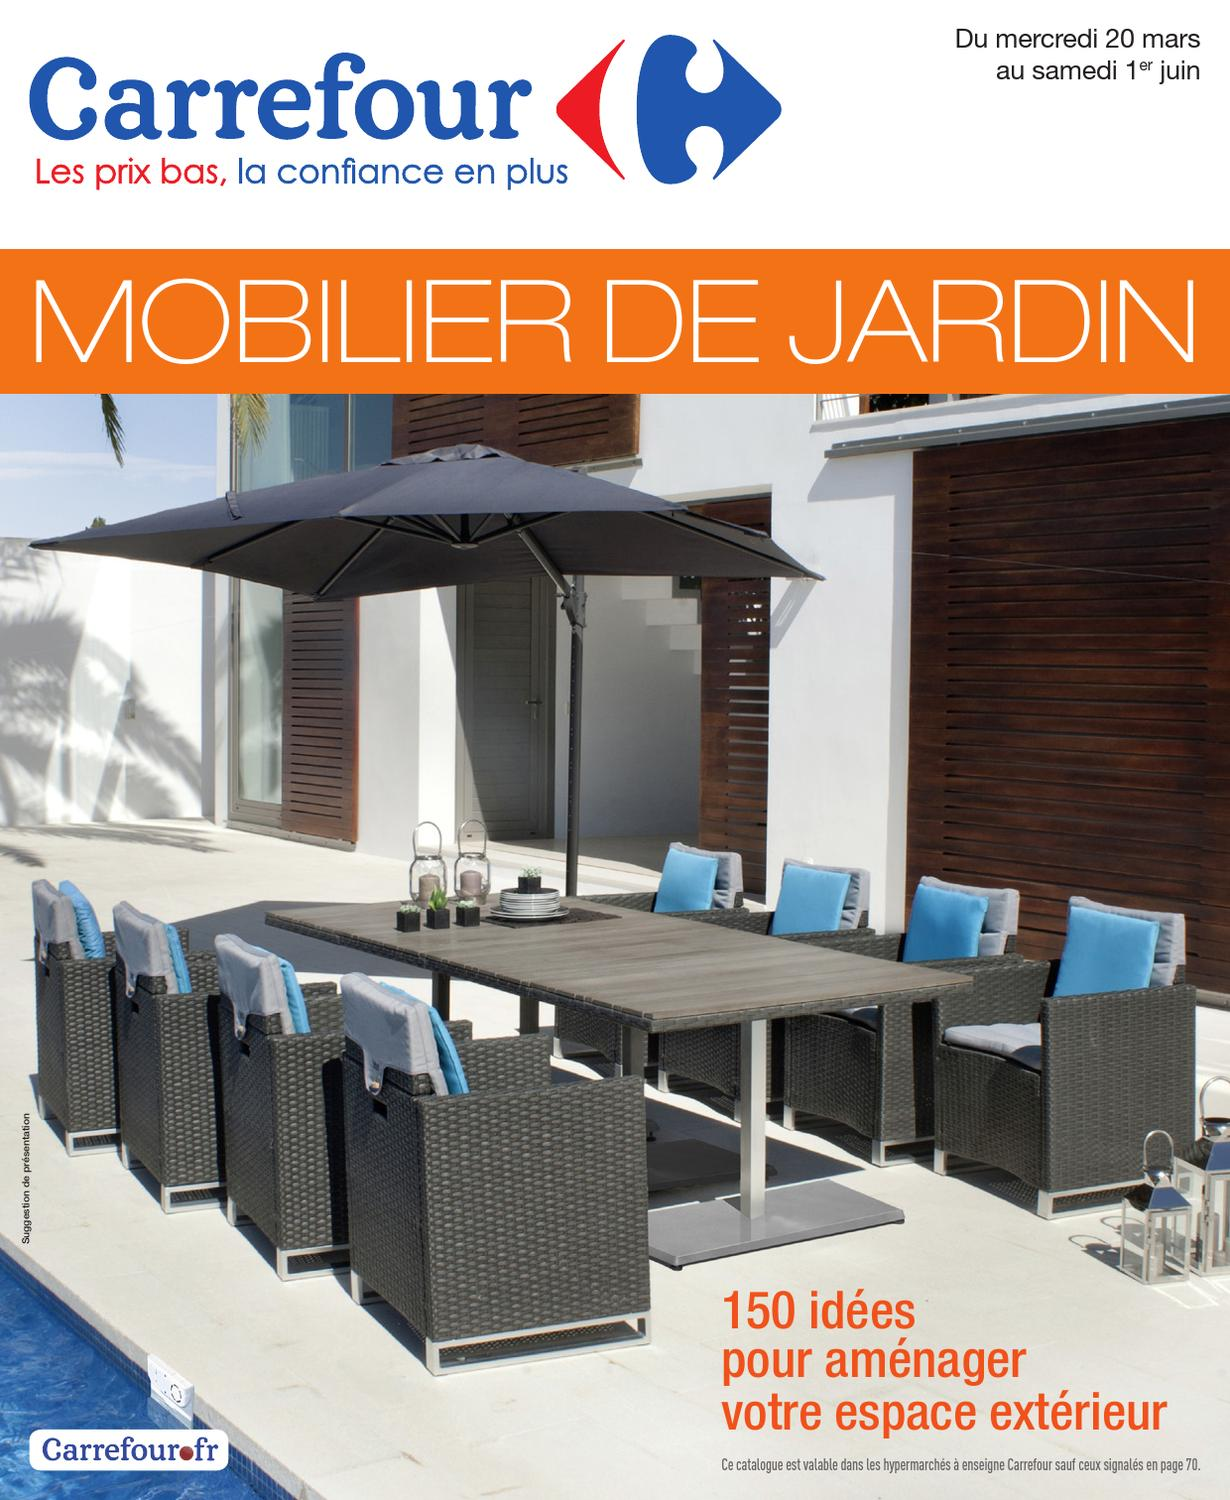 Carrefour 20 3 1 6 2013 by proomo france issuu for Meuble de jardin carrefour belgique